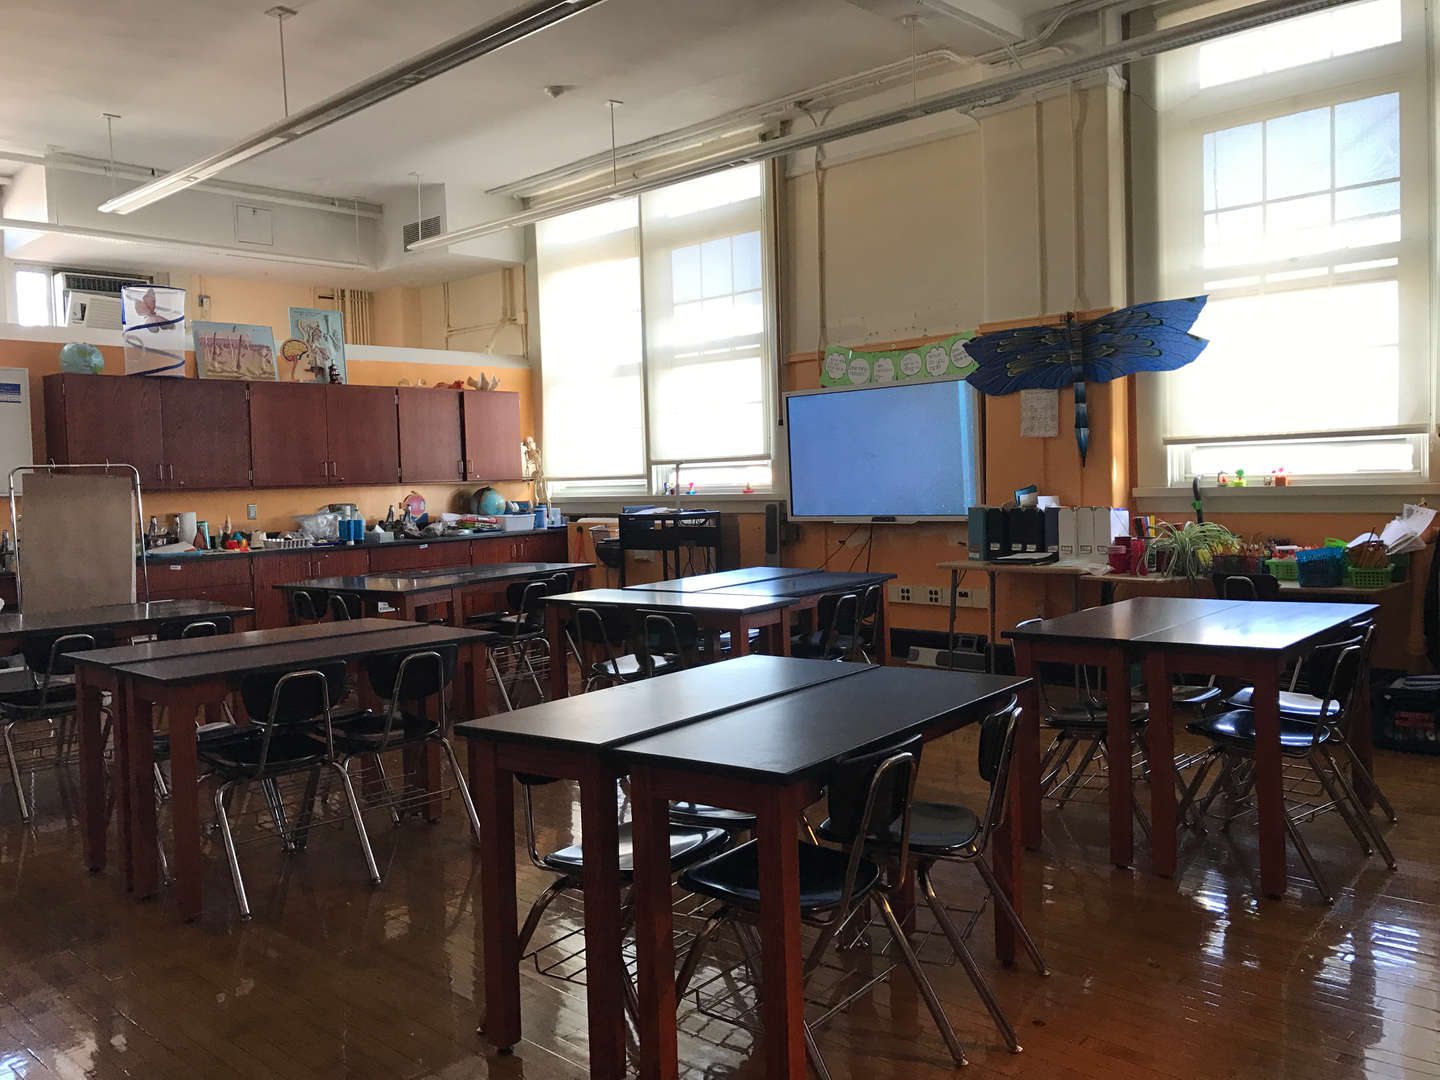 Our wonderful science lab!